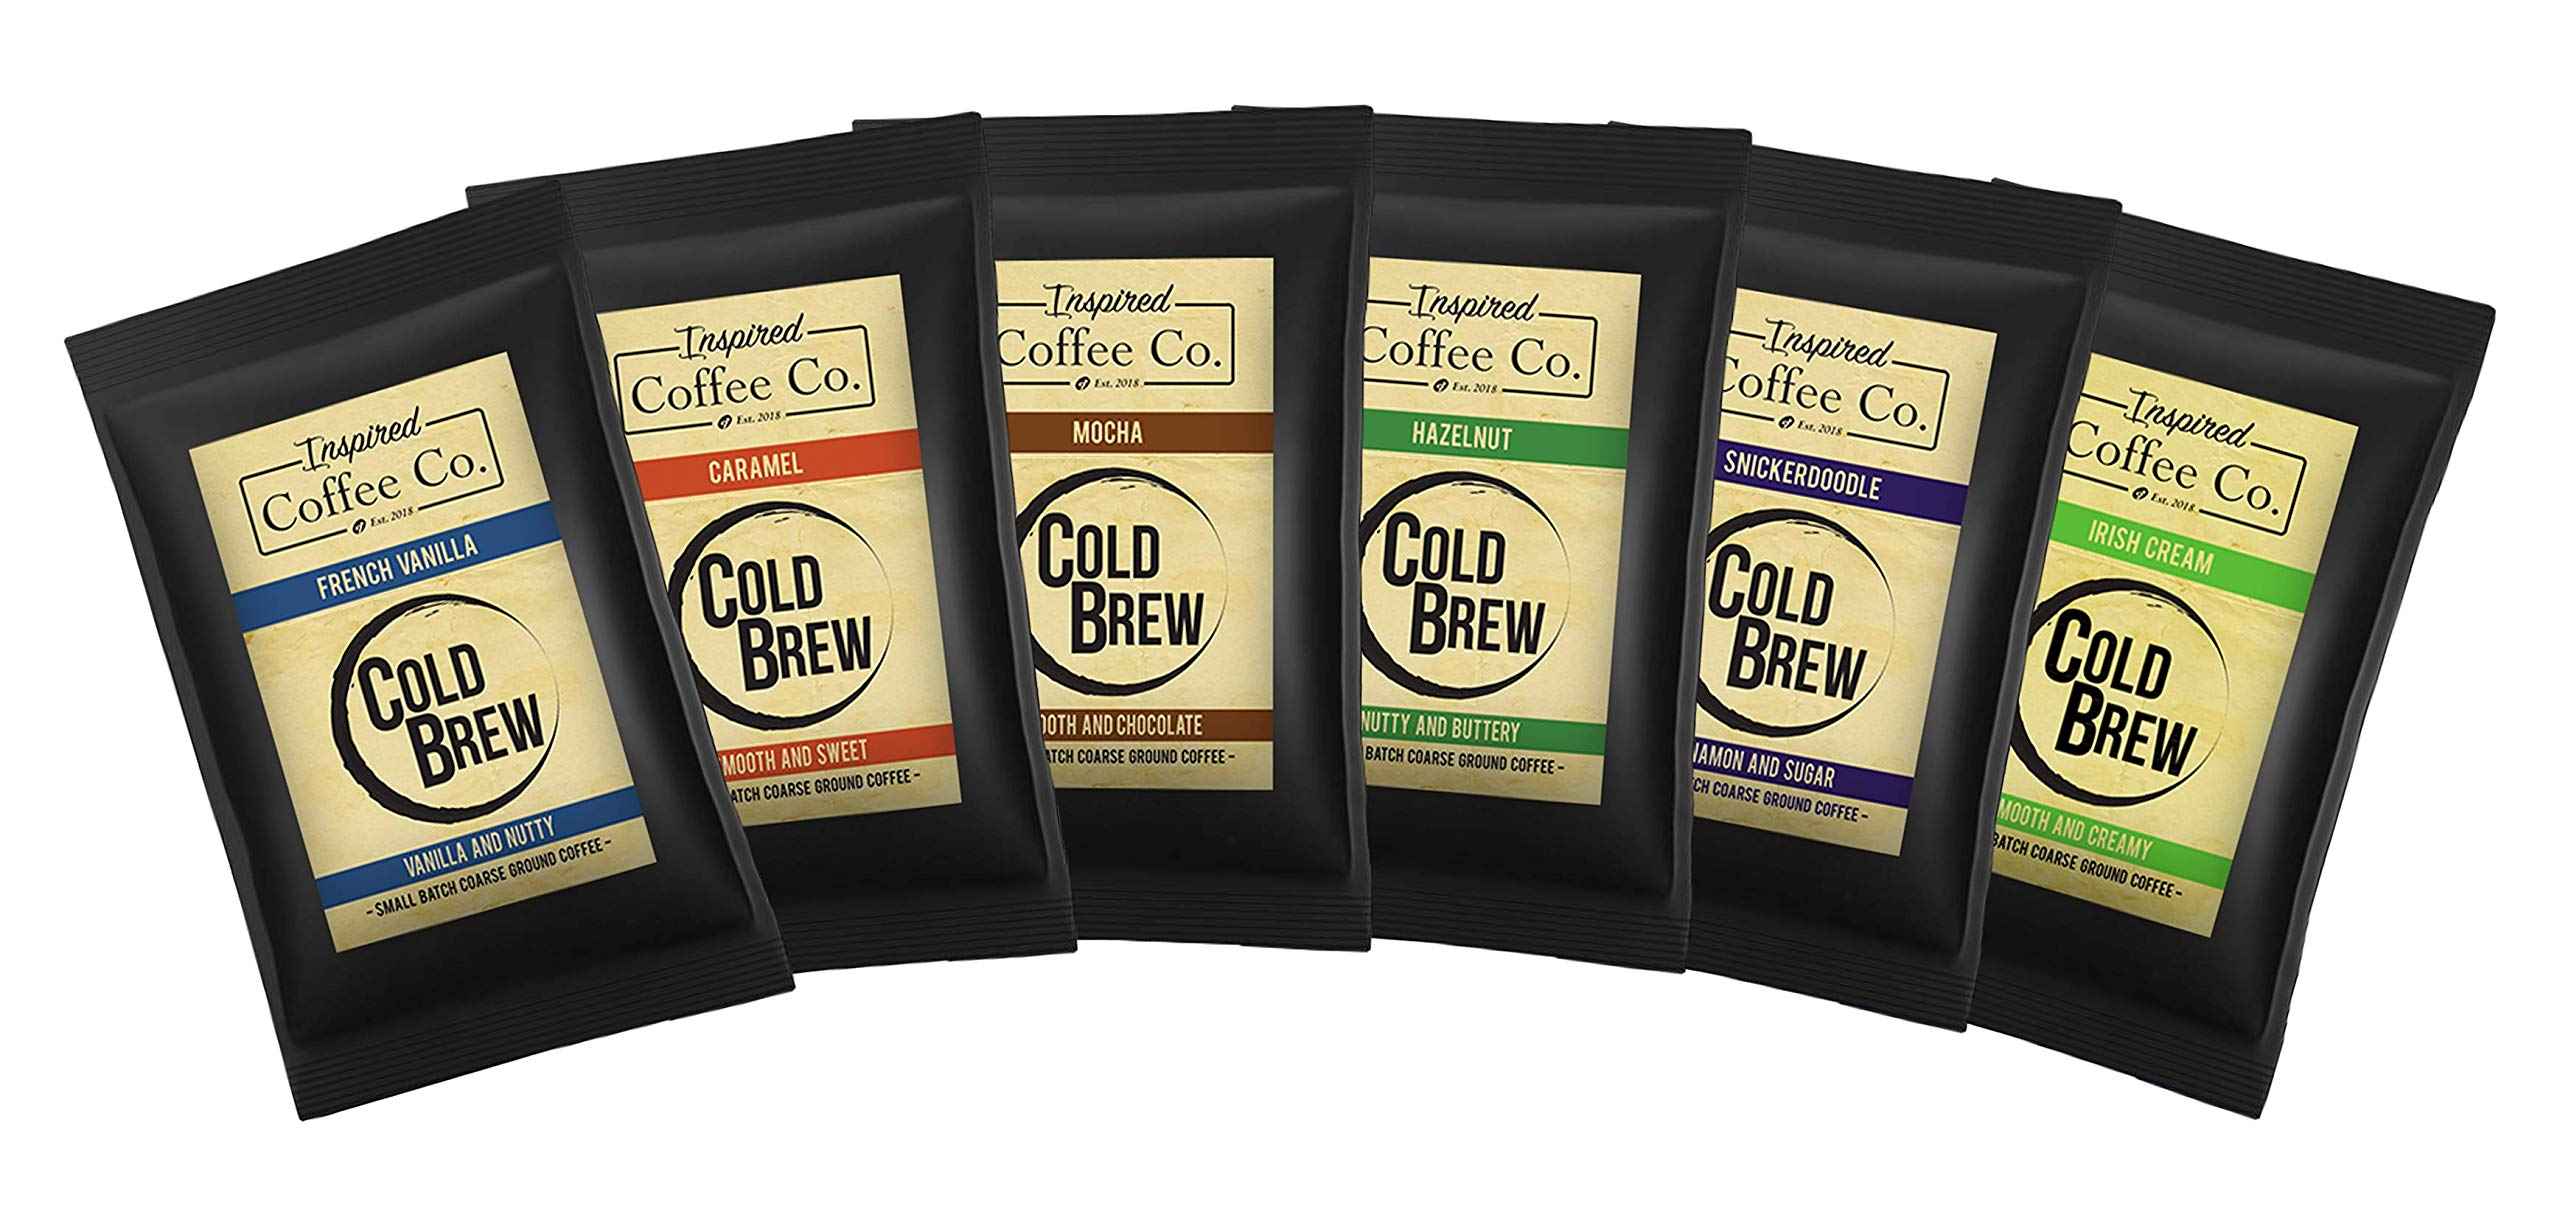 Classic Sampler Pack - Flavored Cold Brew Coffee - Inspired Coffee Co. - Coarse Ground Coffee - Six large 4 oz. Sample Bags by inspire coffee company